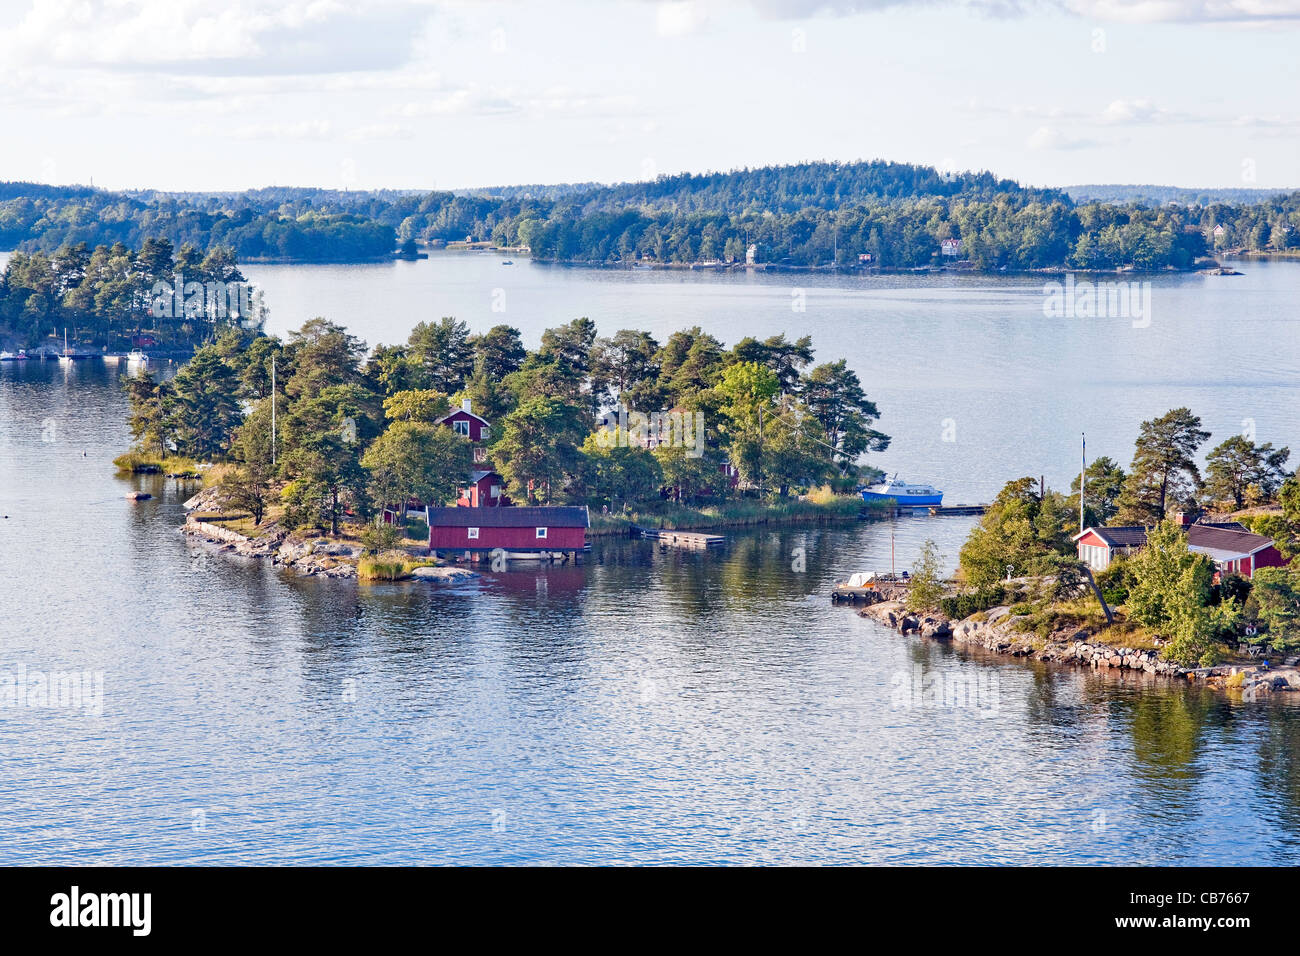 Stockholm Archipelago on the Baltic Sea in Sweden;Scandinavia,Europe - Stock Image